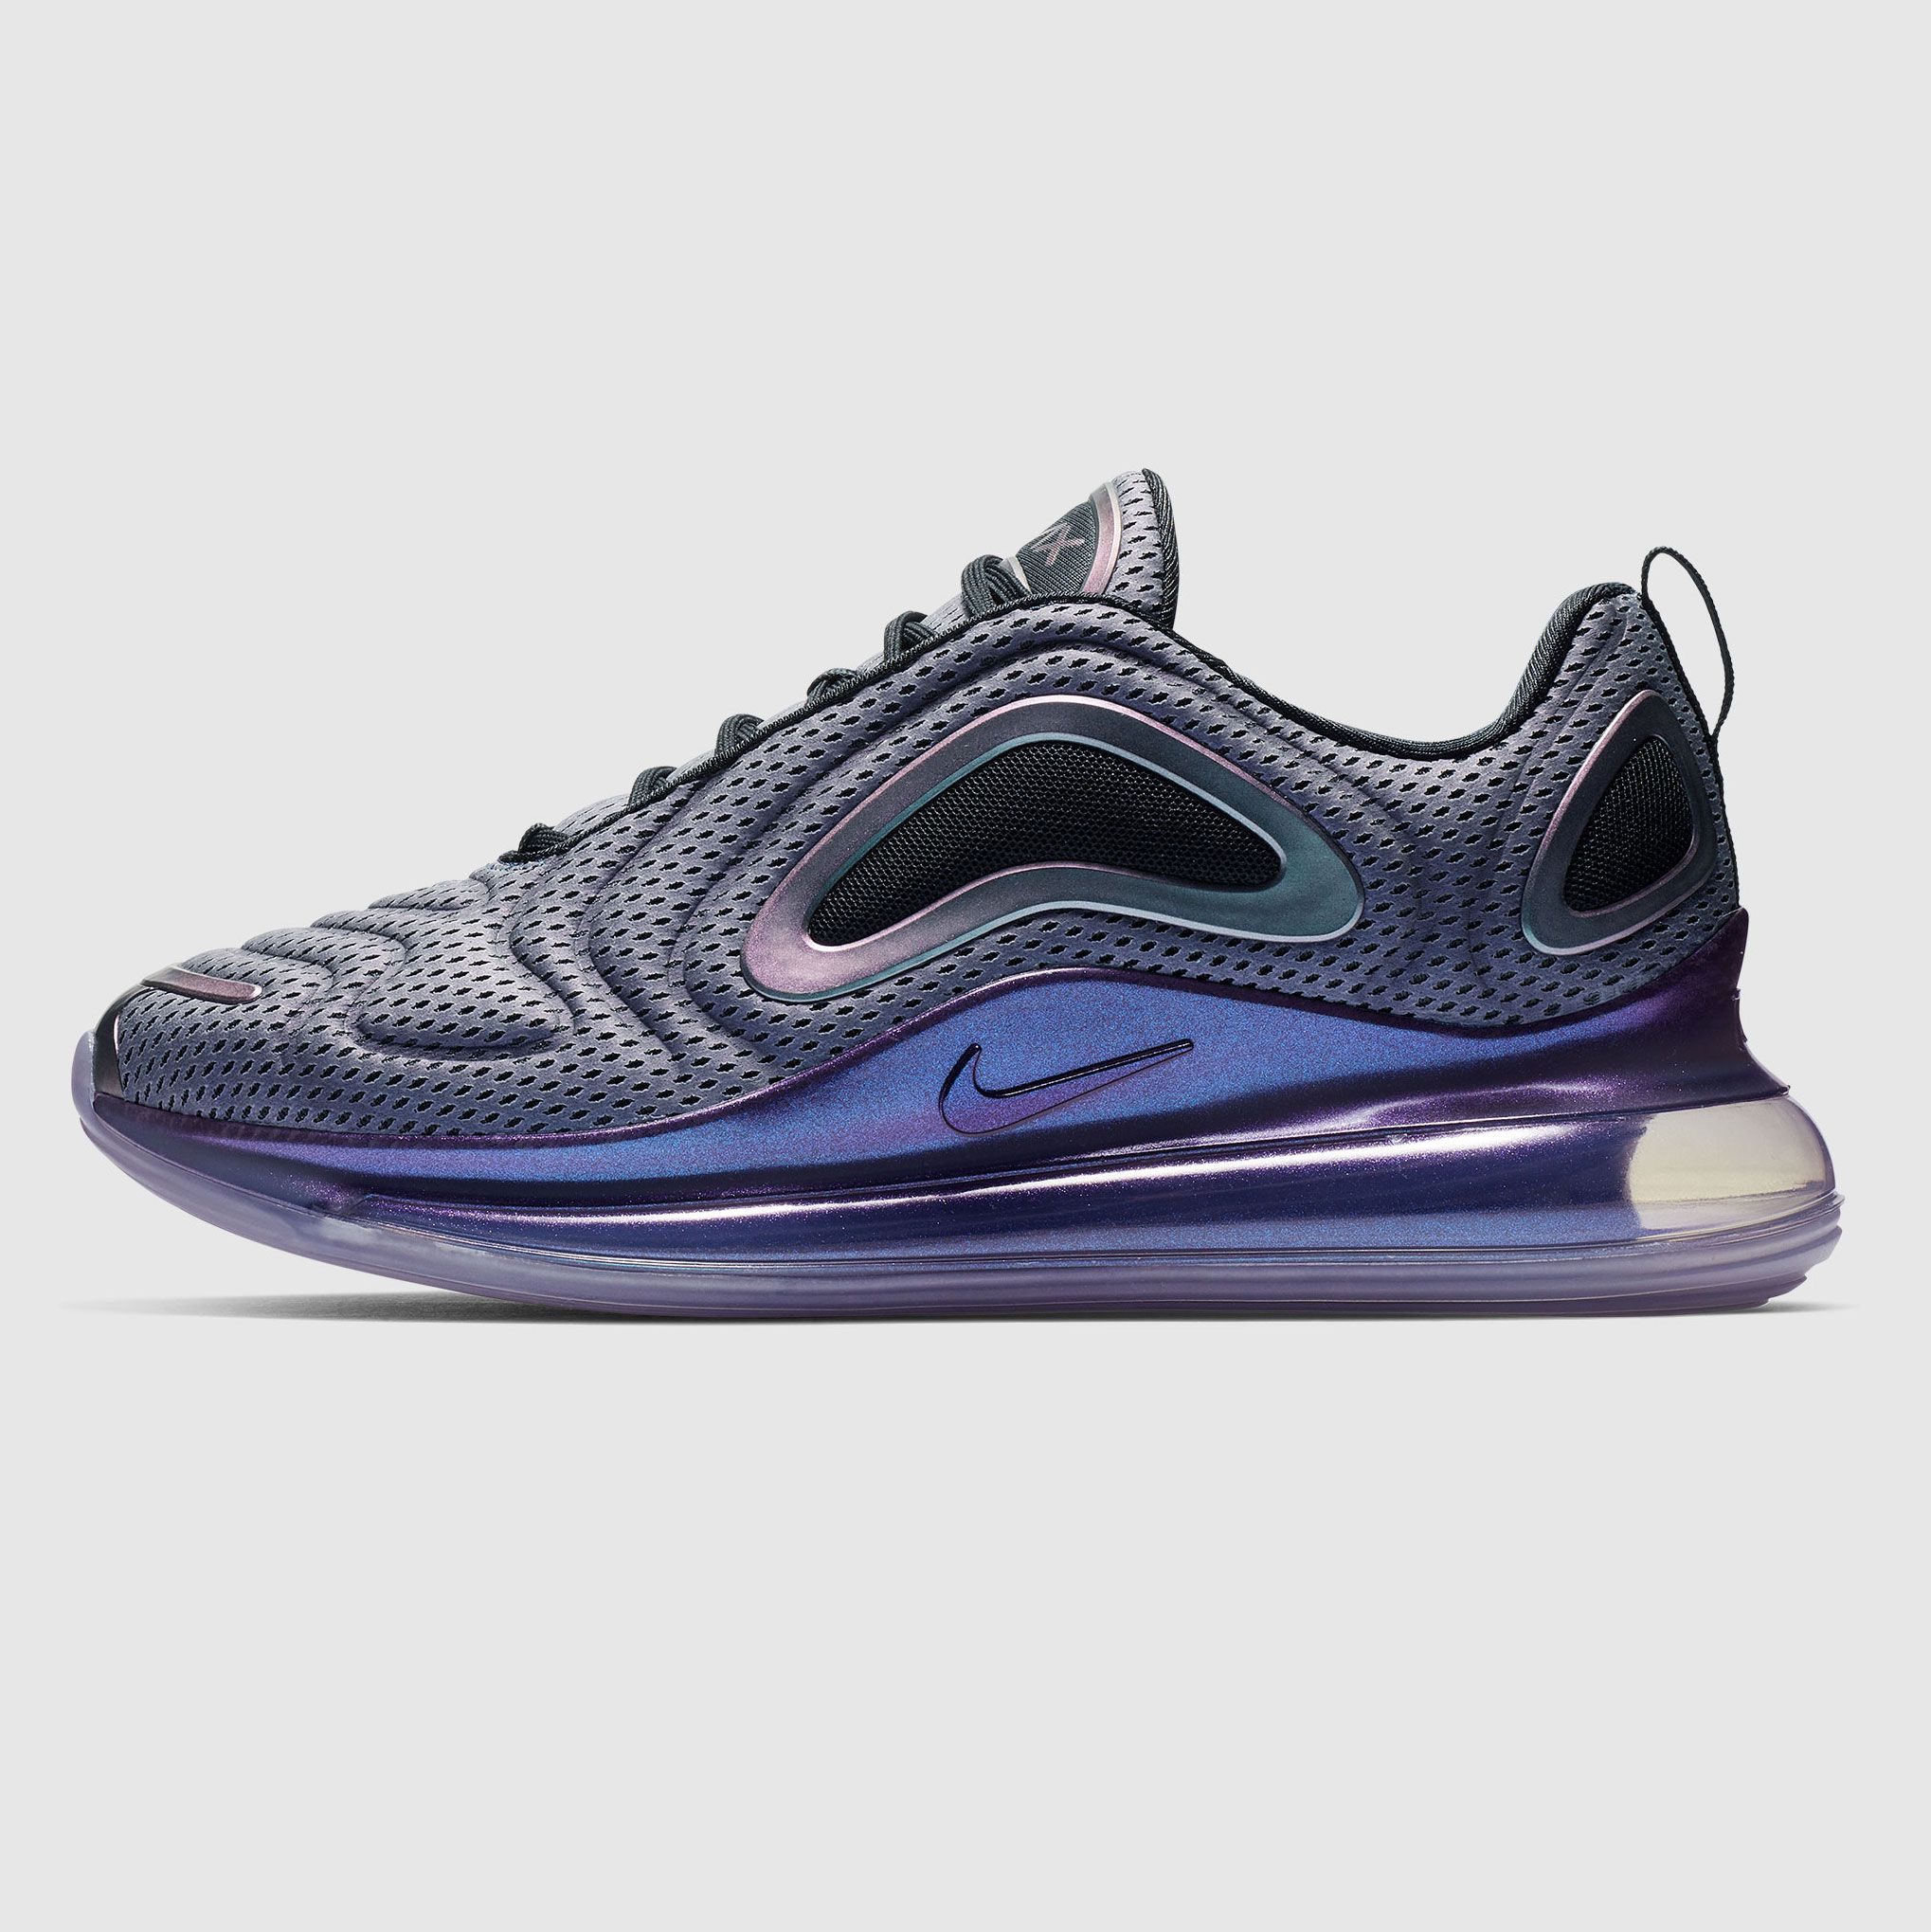 Nike\u0027s Air Max 720 Just Got Its Full, Official Reveal , Air Max 720 Release  Date